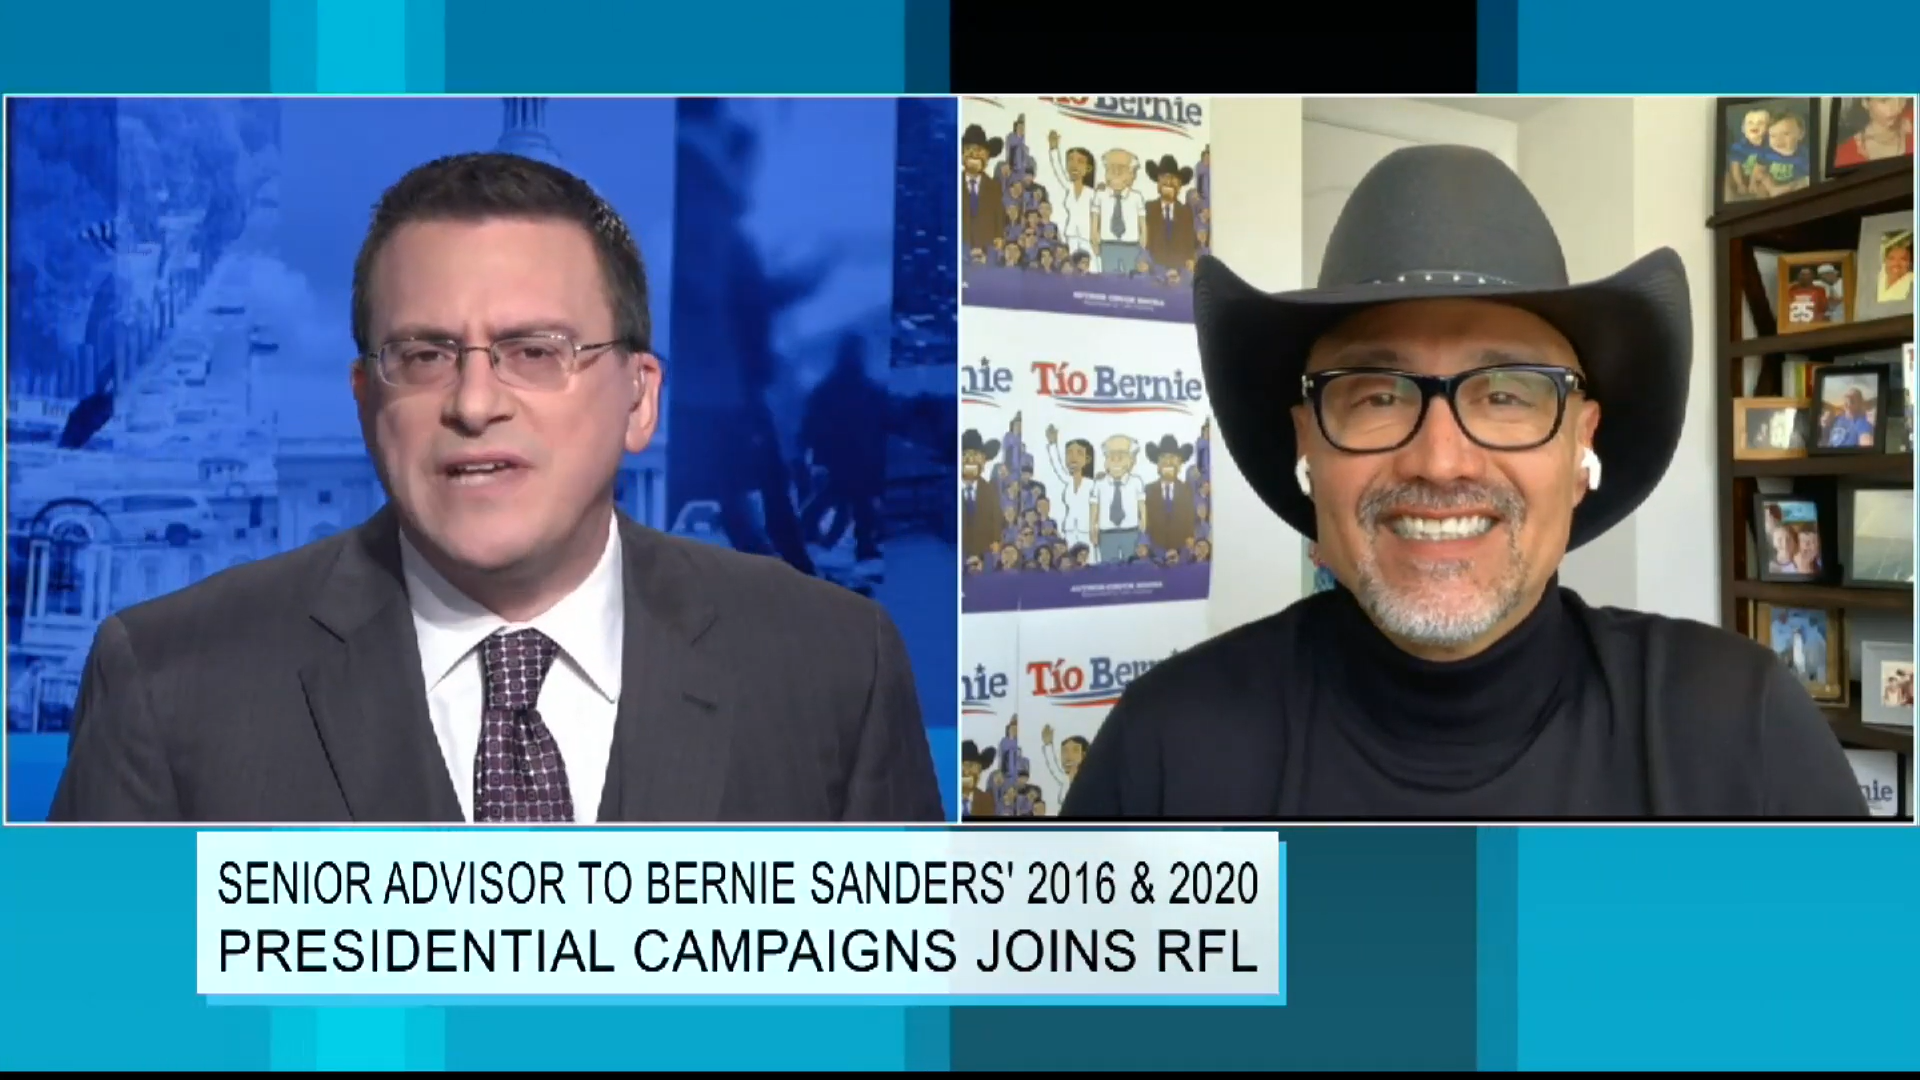 Senior Advisor to Bernie Sanders' 2016 &